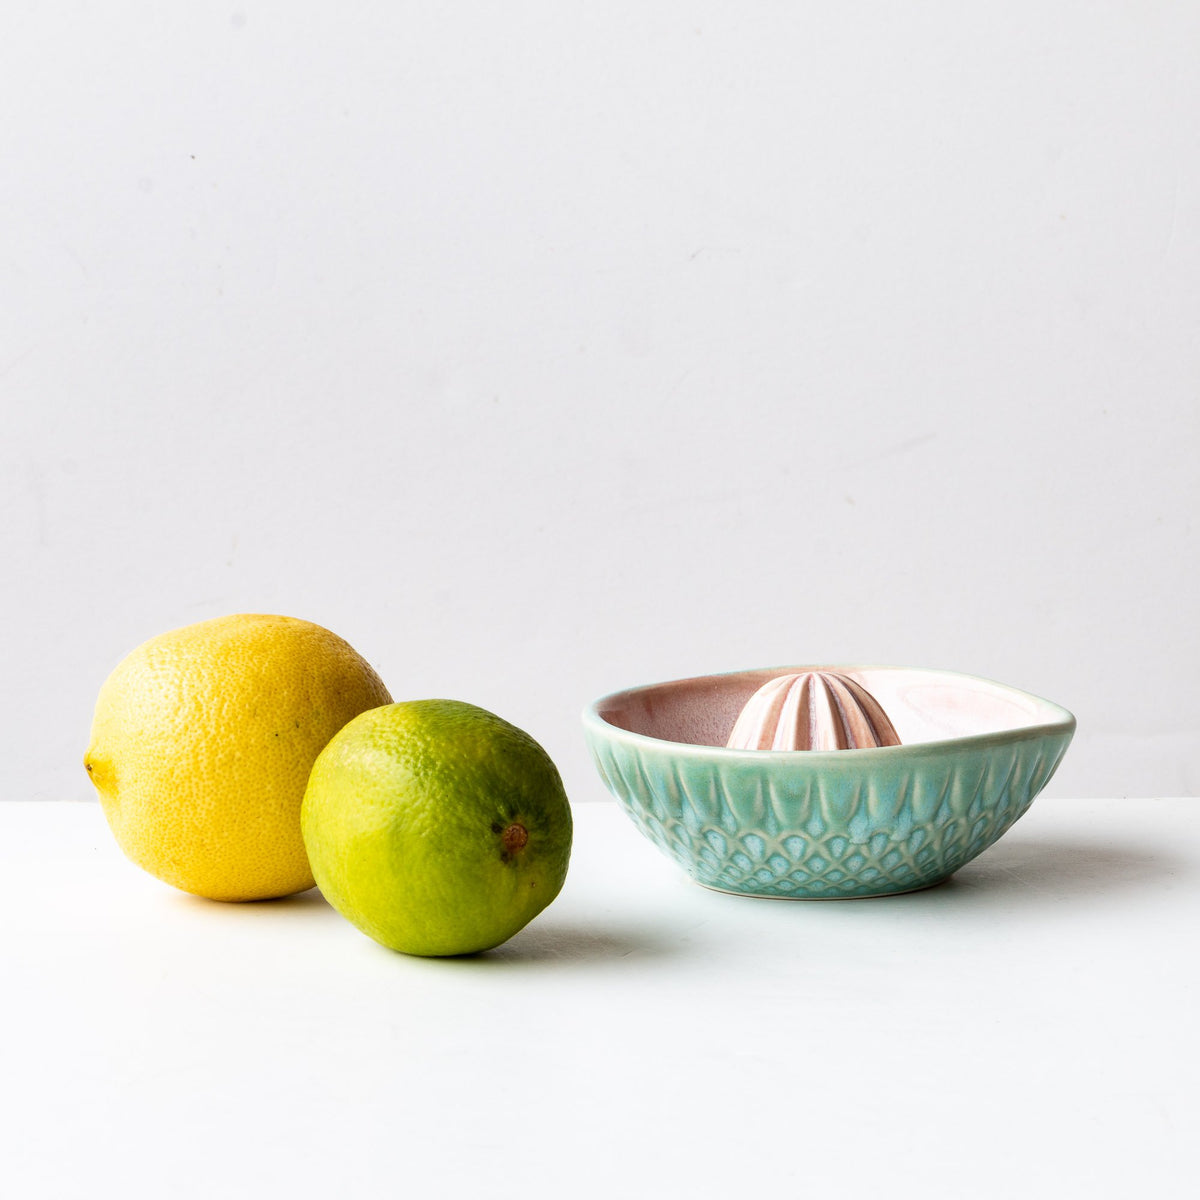 Watercolour Handcrafted Small Porcelain Citrus Juicer - Sold by Chic & Basta